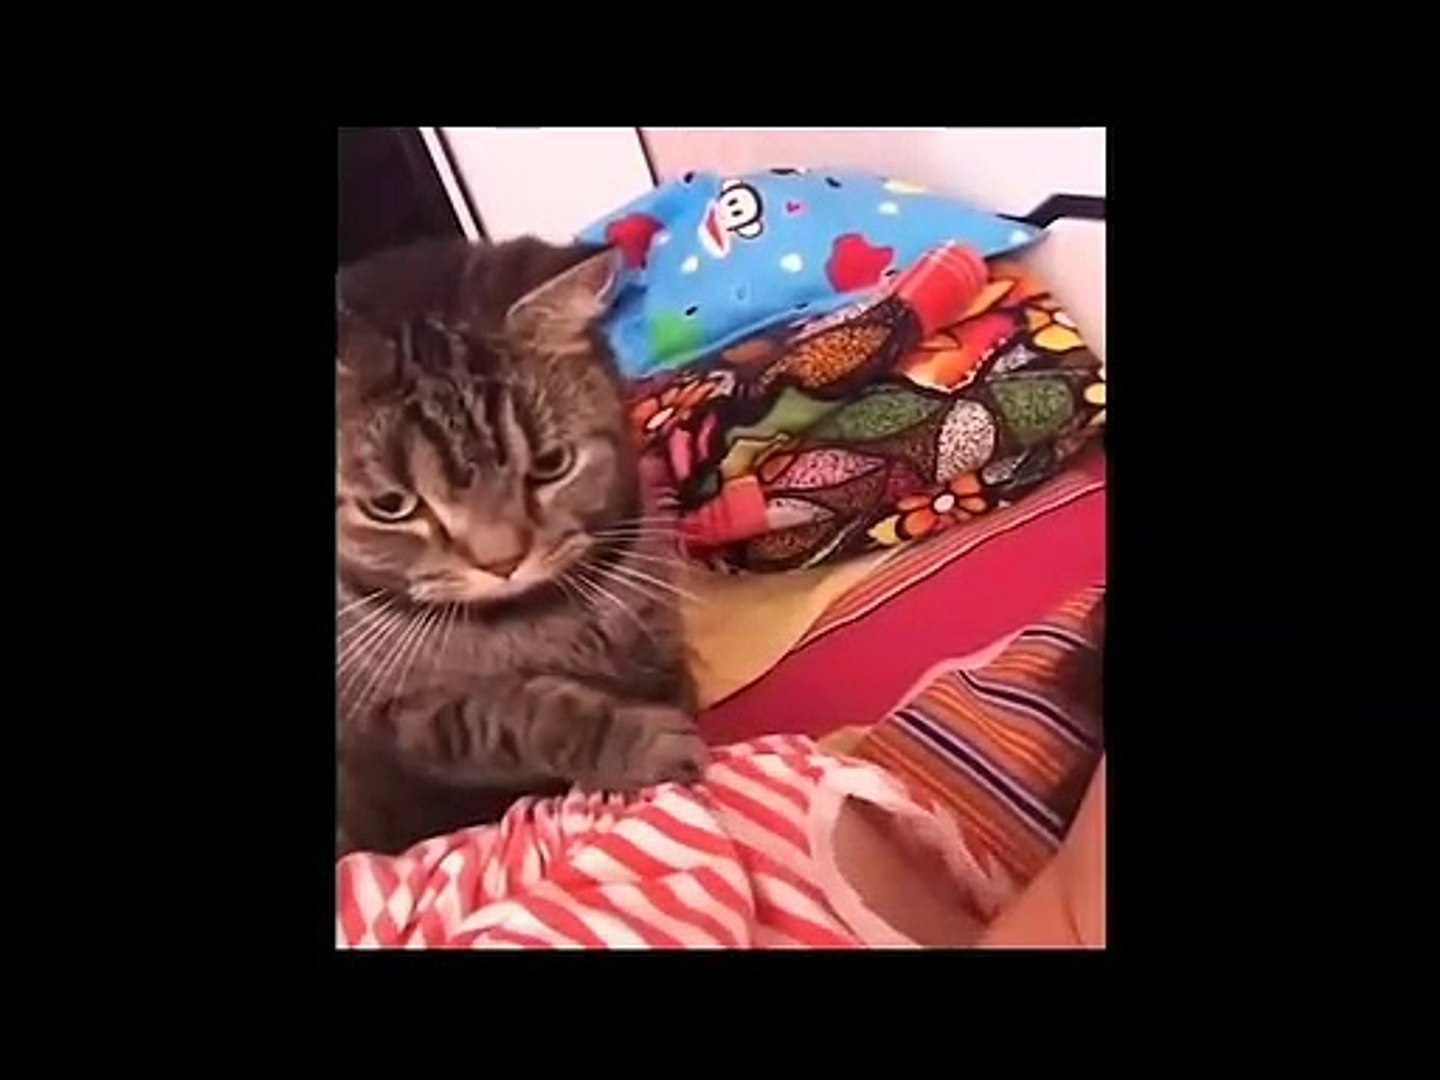 Cute animals Videos Compilation cute moment#4